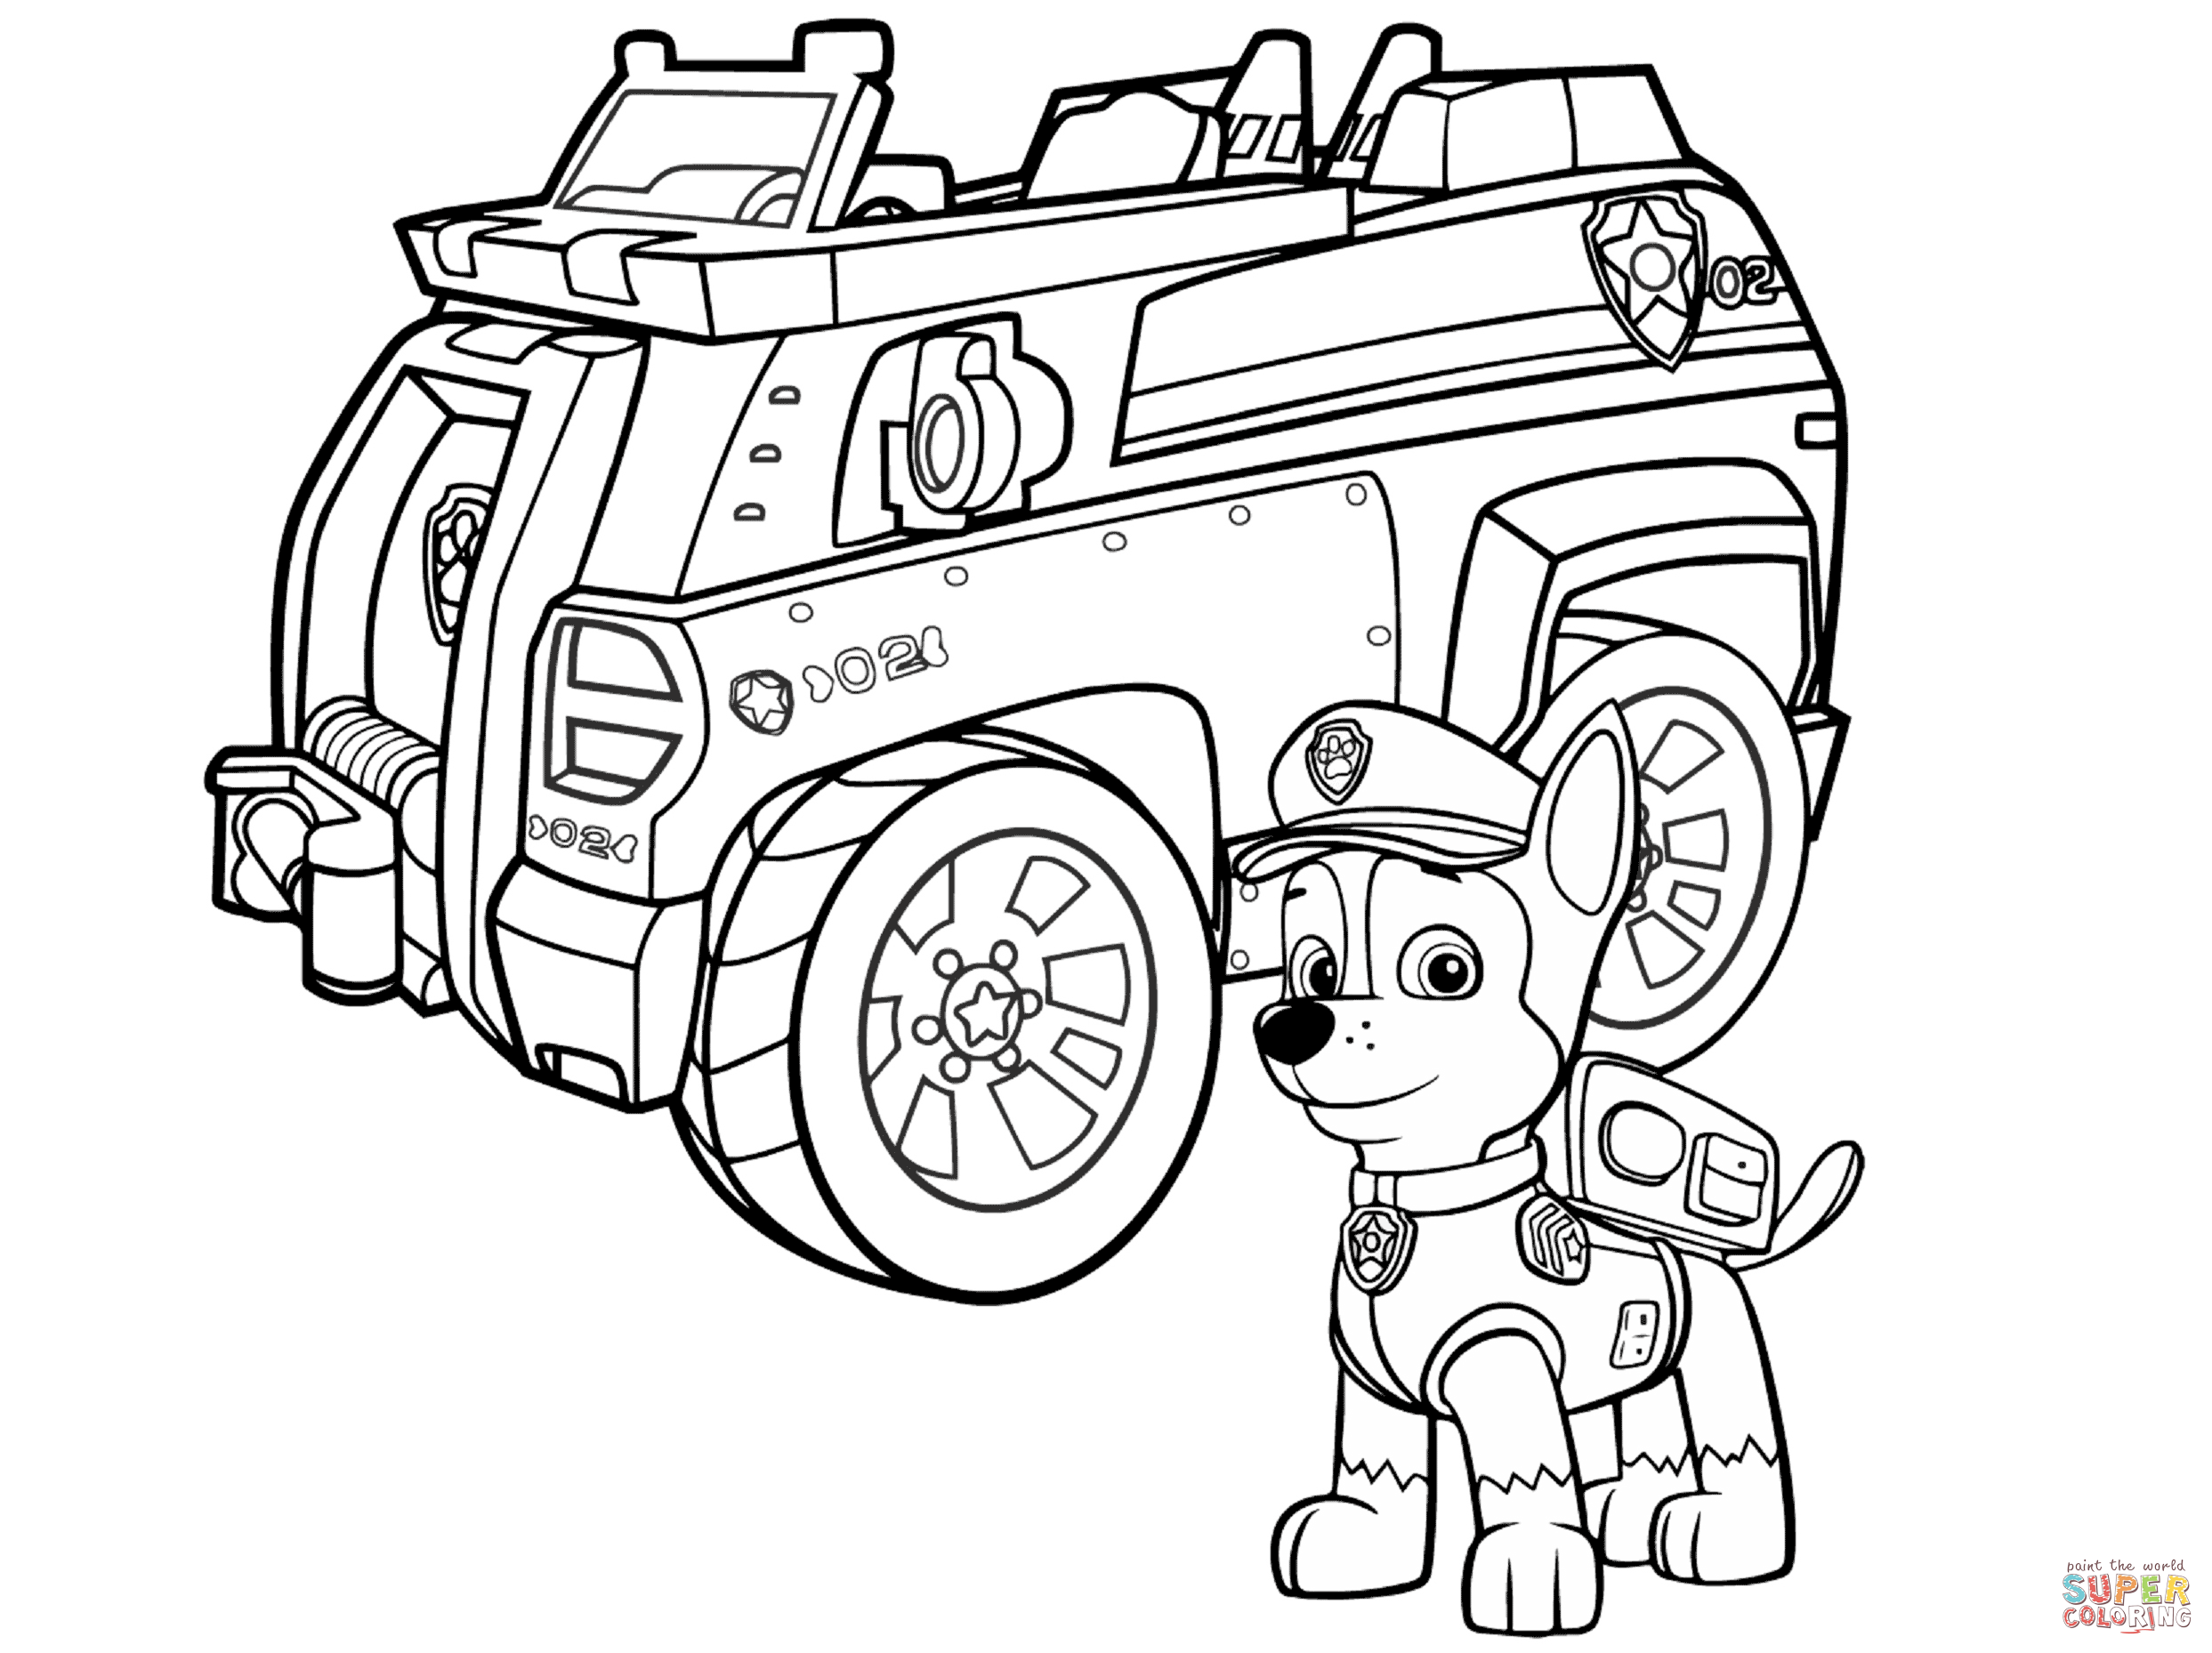 Paw Patrol Chase Coloring Pages - Coloring Home